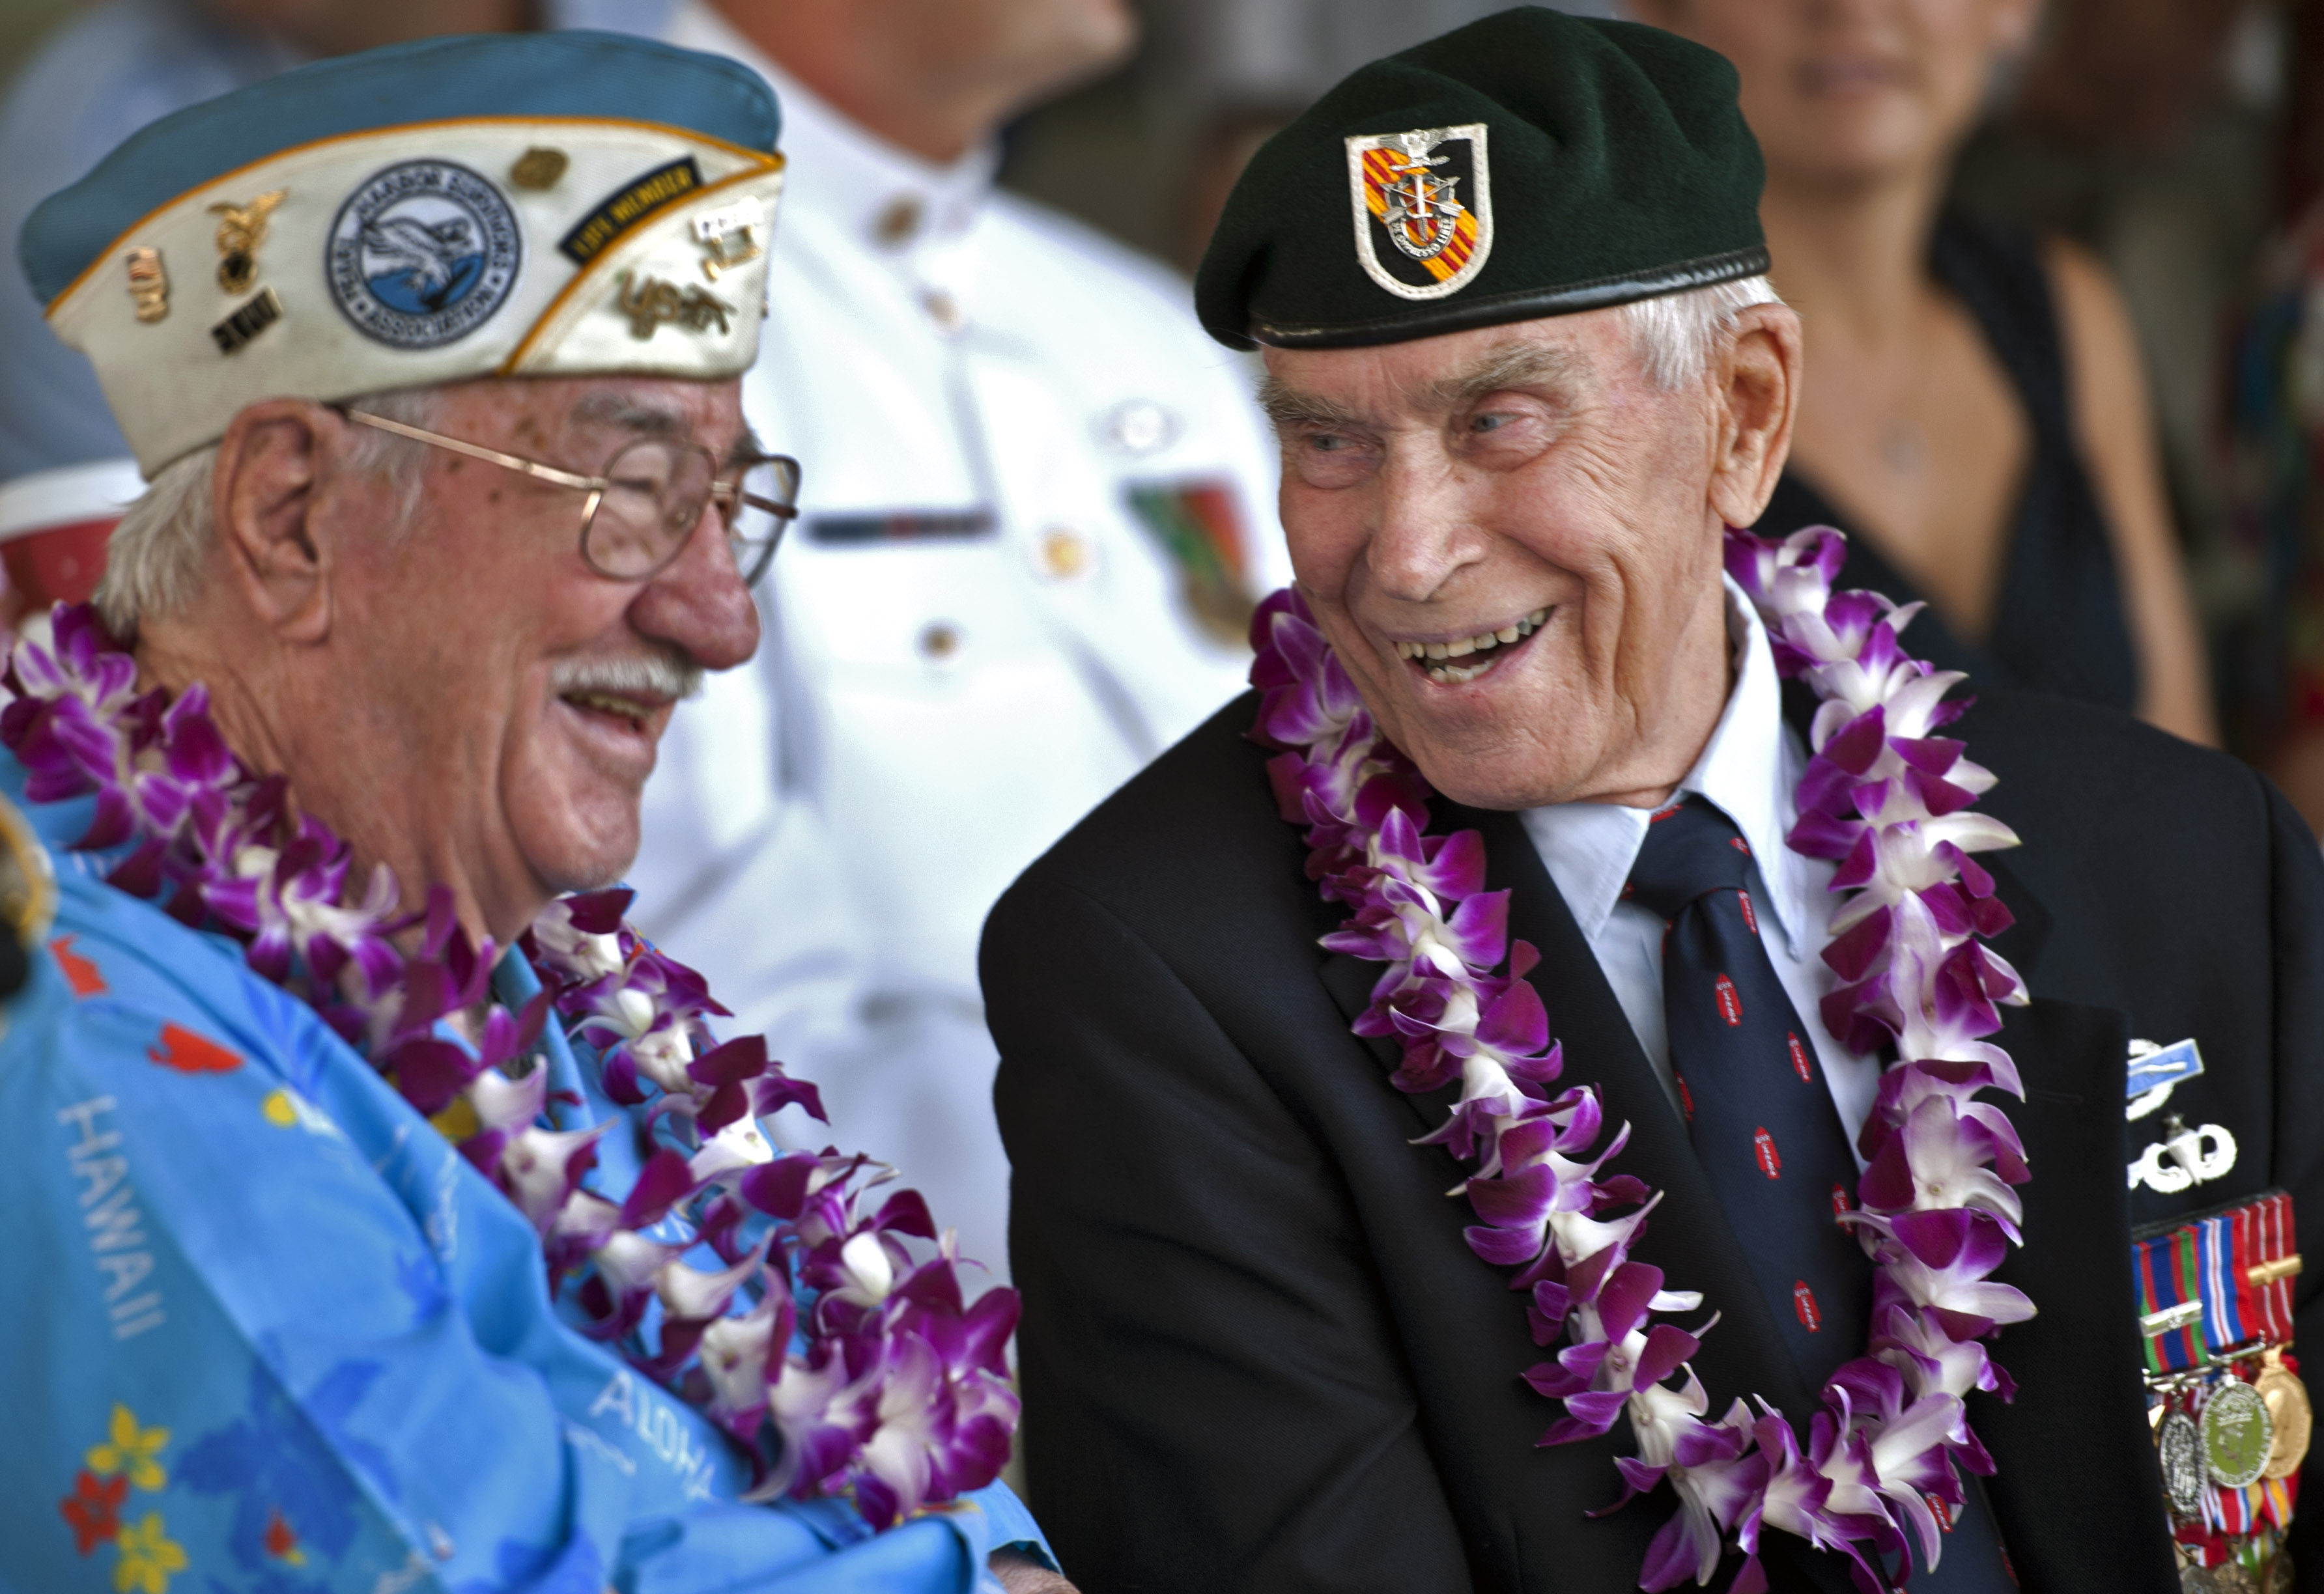 Images Of Pearl Harbor Day >> File:Pearl Harbor survivors Sam Clower, left, and Ab Brum talk during a ceremony commemorating ...